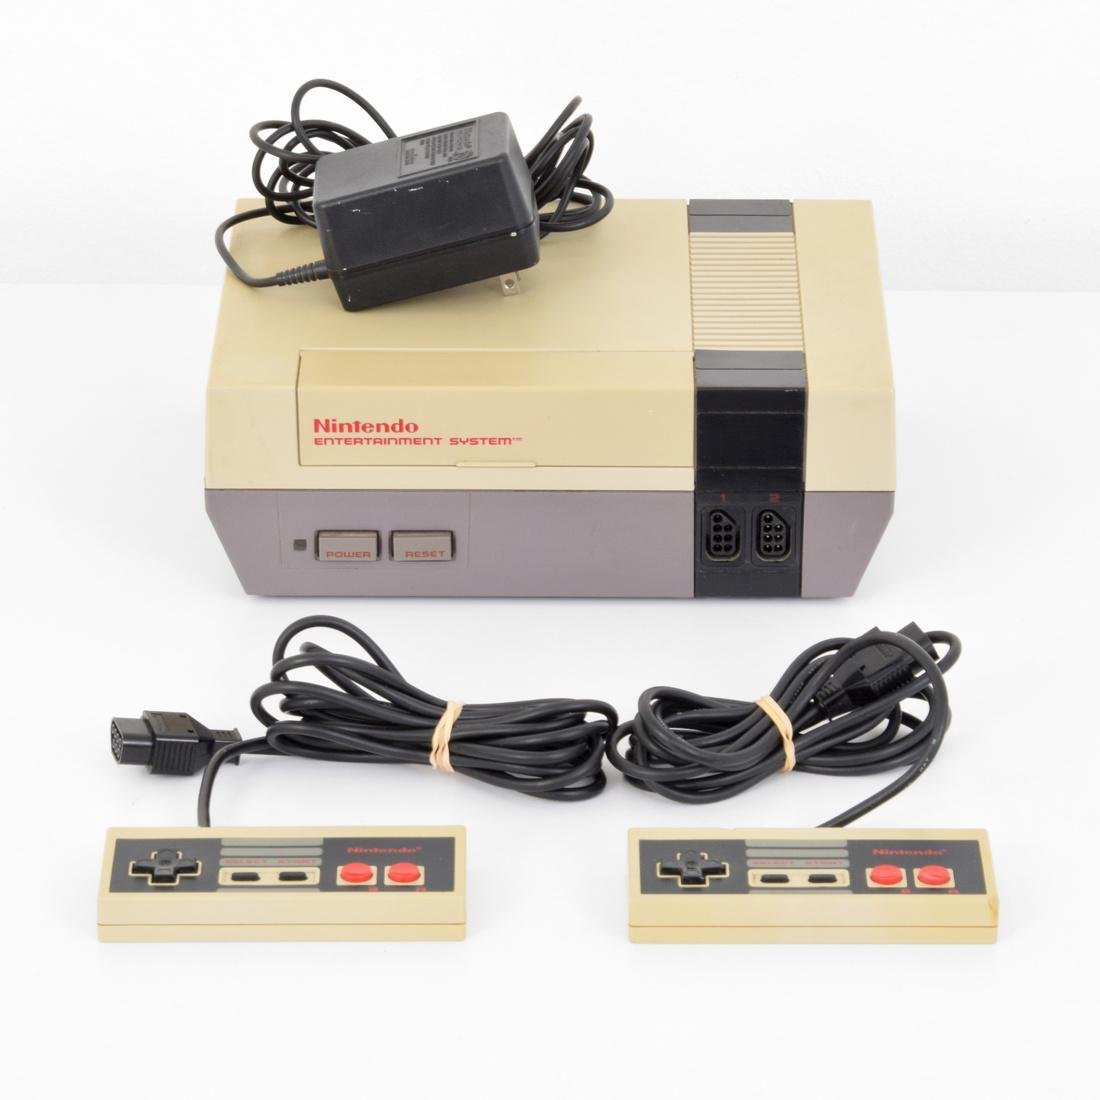 Nintendo Entertainment System, Games & Controllers - 6